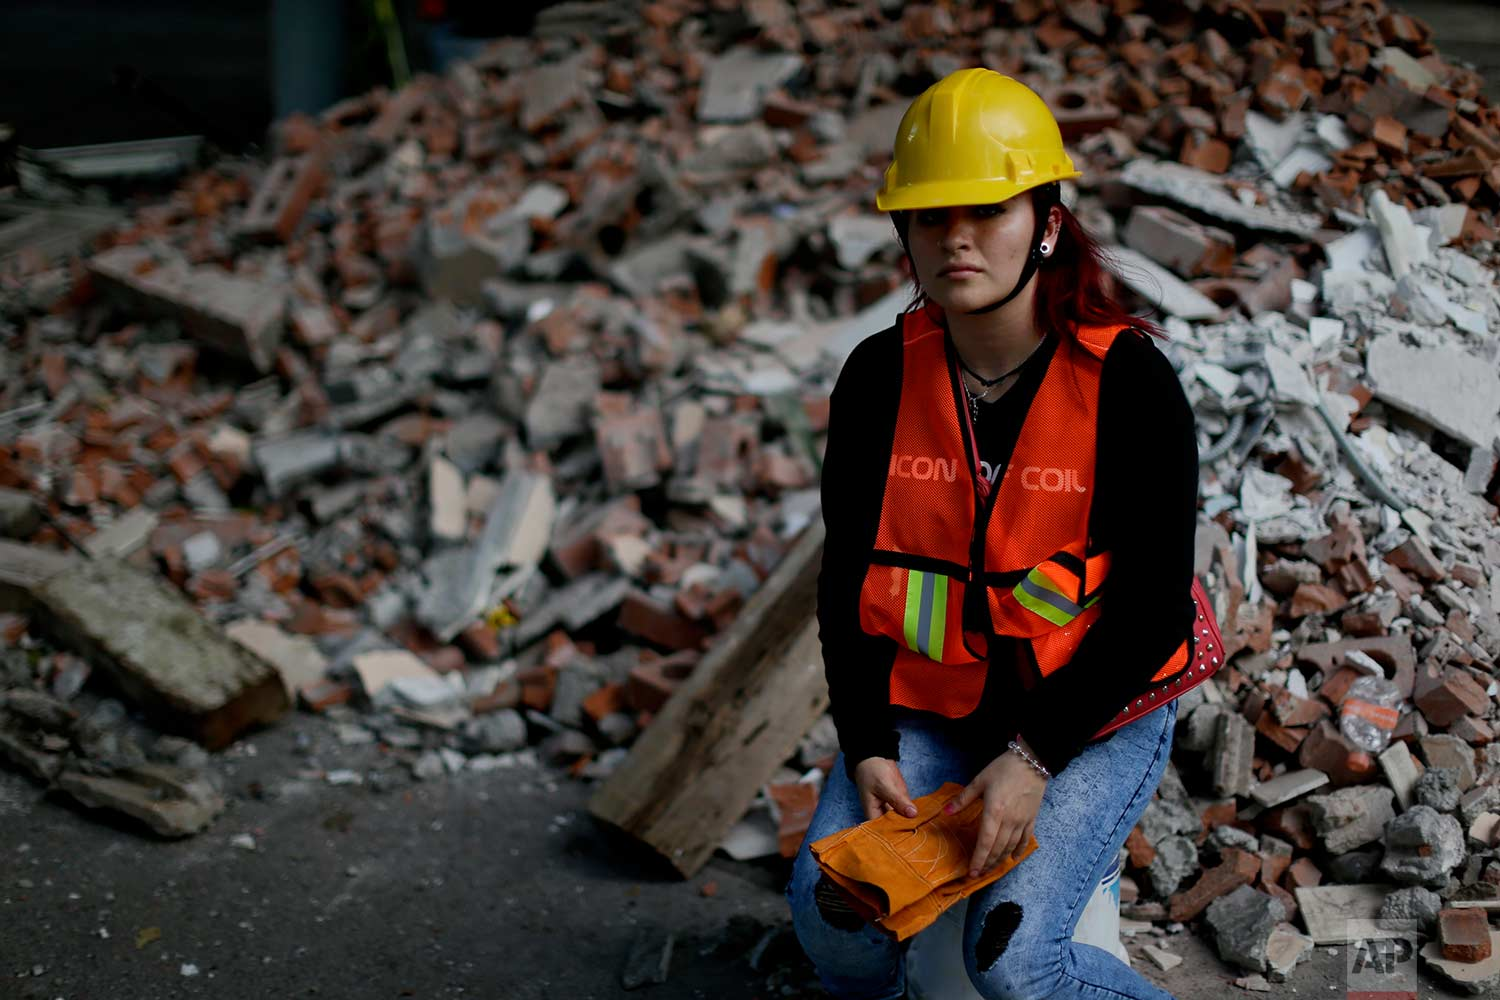 Frida Islas Rueda, 22-year-old student, poses for a picture near debris from a damaged building after an earthquake, Sept. 22, 2017, in Mexico City. (AP Photo/Natacha Pisarenko)